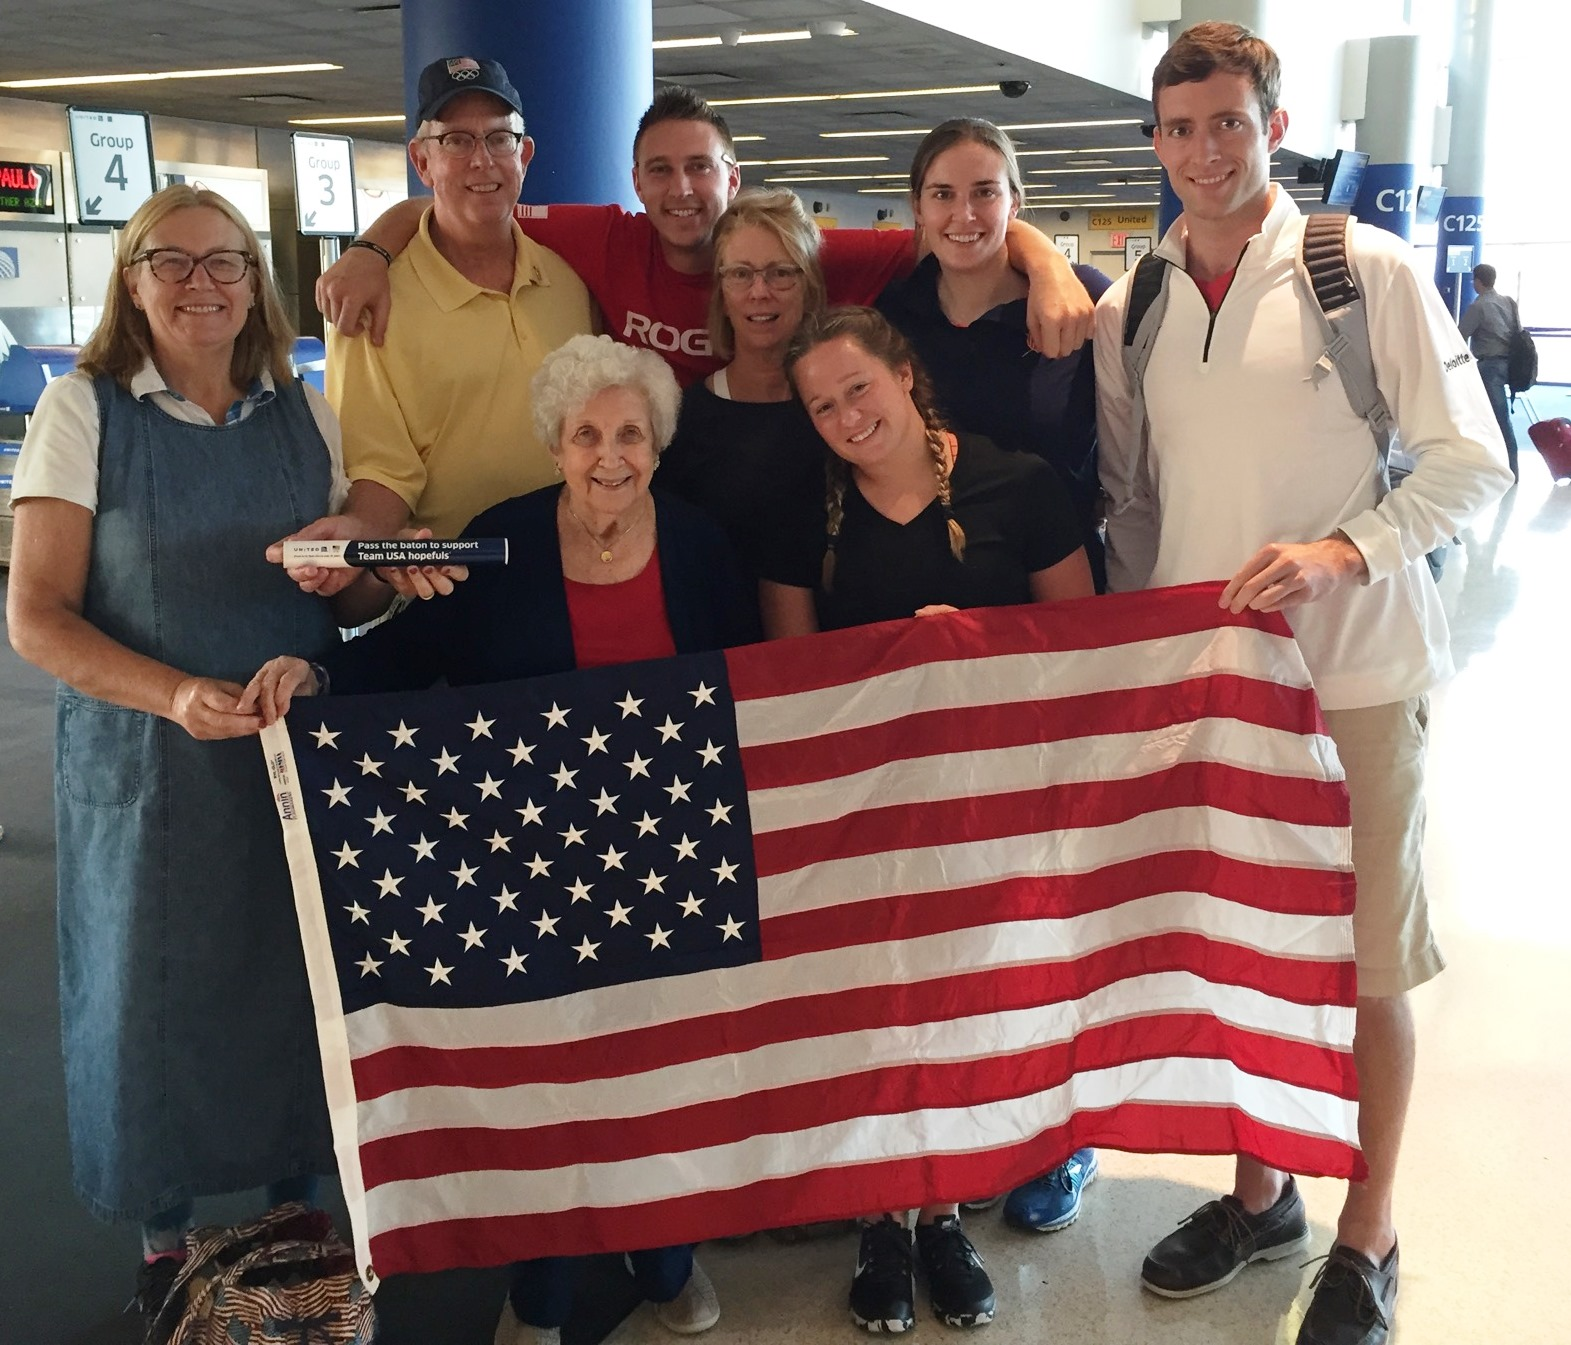 The Regan family poses with an American flag before boarding their flight to Rio.